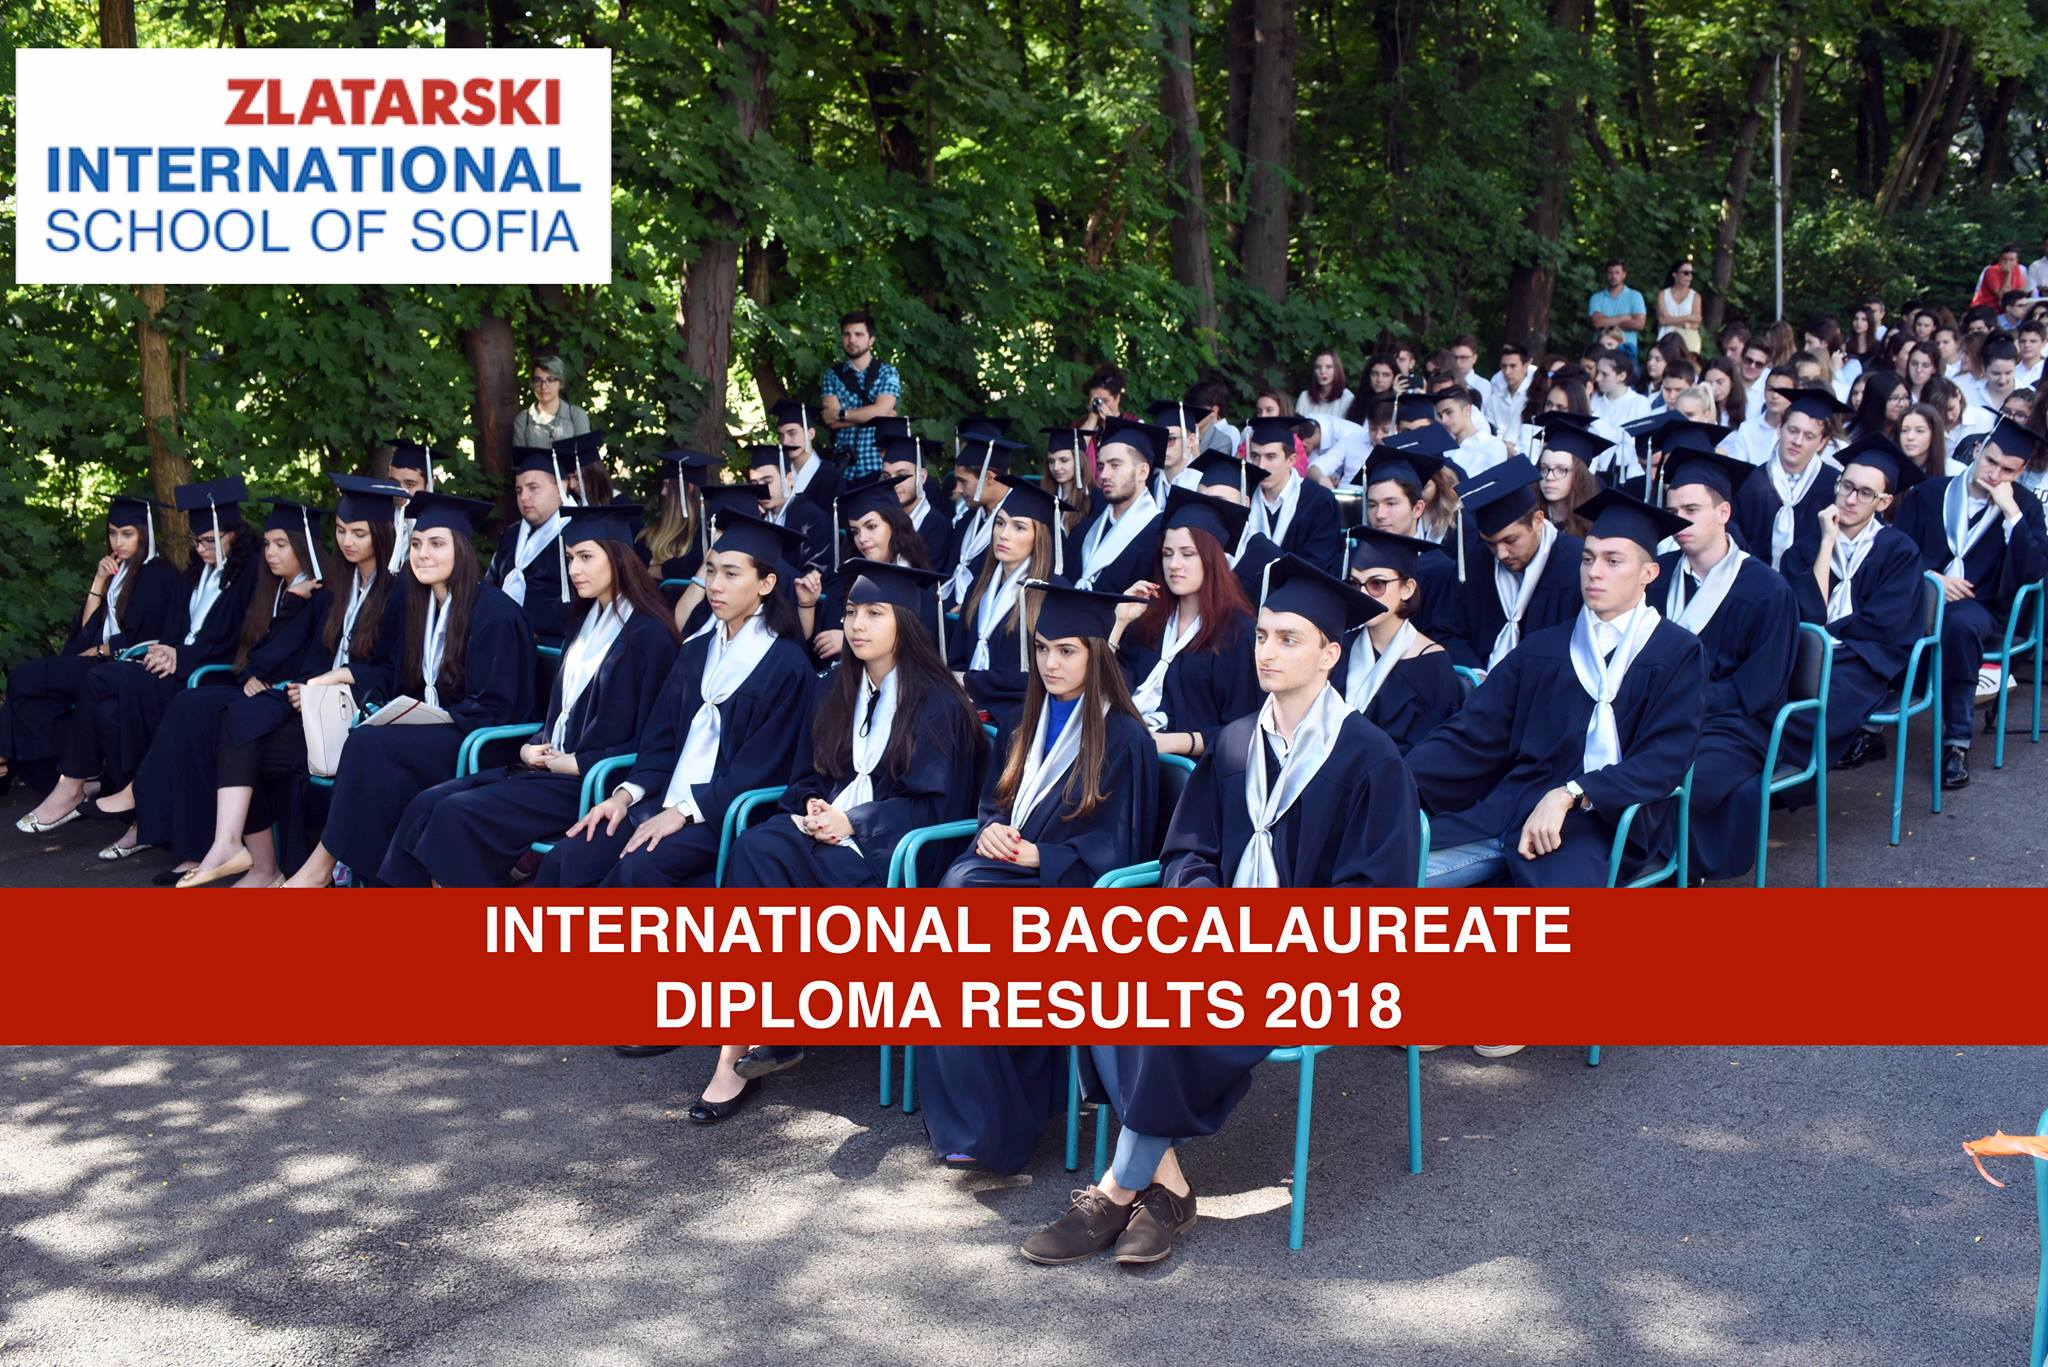 IB Diploma Results 2018: Congratulations Class of 2018